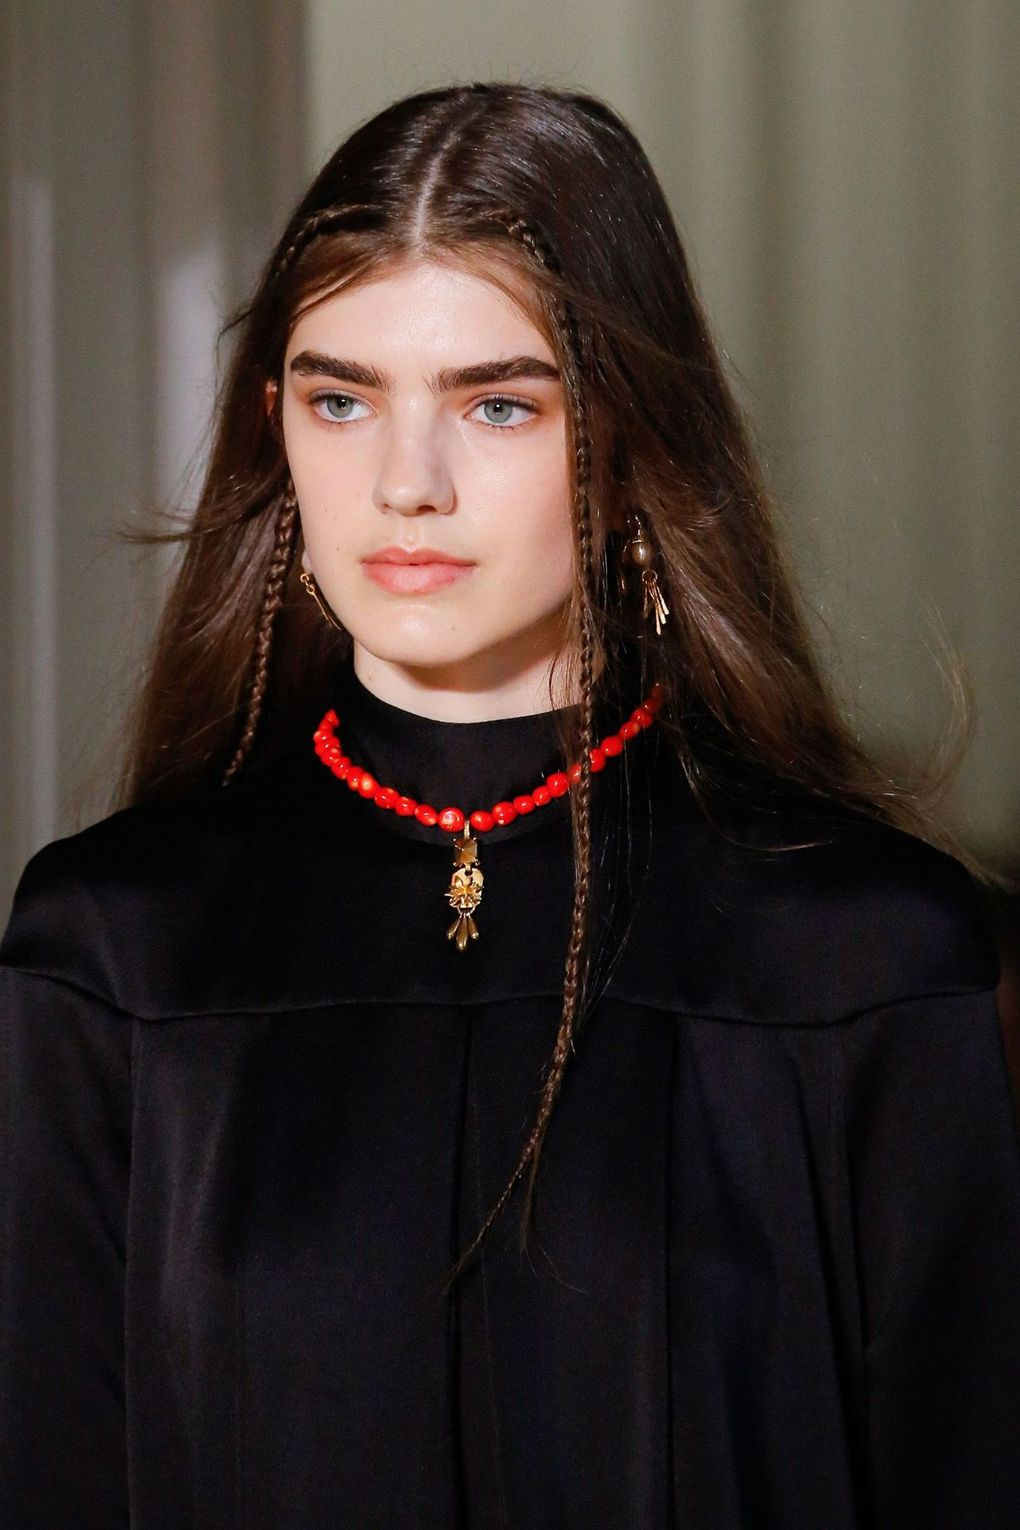 The City: Paris The Show: Valentino The Look: Mini plaits